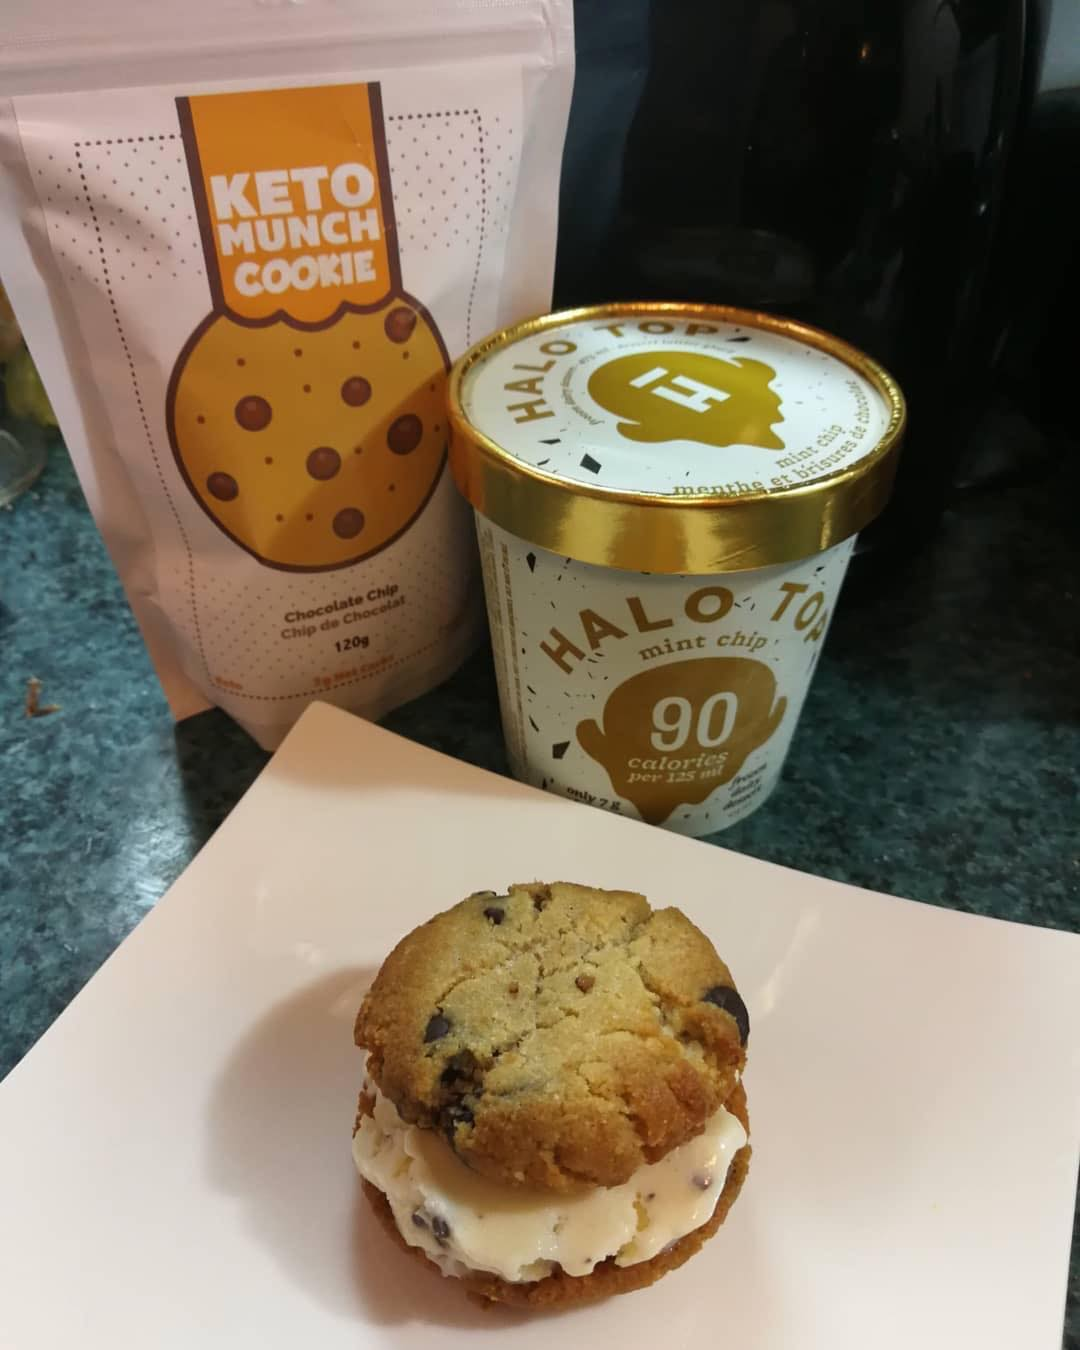 OMG I need this in my life! It's been a while since I've made my ice cream and I think I need to make some new flavors and ice cream sandwiches!! —— Repost @thriving.on.low.carb ・・・ Ohhhhhh yeahhhhh. 😋 —- Talk about great timing! I received my @ketobakeclub box yesterday and I was happy to see a bag of @ketomunchfoods cookies in there. 😄 —- I couldn't resist making a Halo Top Mint Chip Keto Munch Cookie ice cream sandwich. 👅 I used 1/4 cup of the Mint Chip.  I think it's been a while since having HT, I thought it was richer and creamier. (Though my fave is Red Velvet and I need to get.) I tried a spoon of the Birthday cake flavour and liked that better. I'll have to try that for my next sandwich 😄 —- Curious about the macros on this? — 265 calories 21.5g Fat 6.5g Protein  5.5g Net Carb —- I think next time I'll make these up beforehand and freeze. Perfect for summer